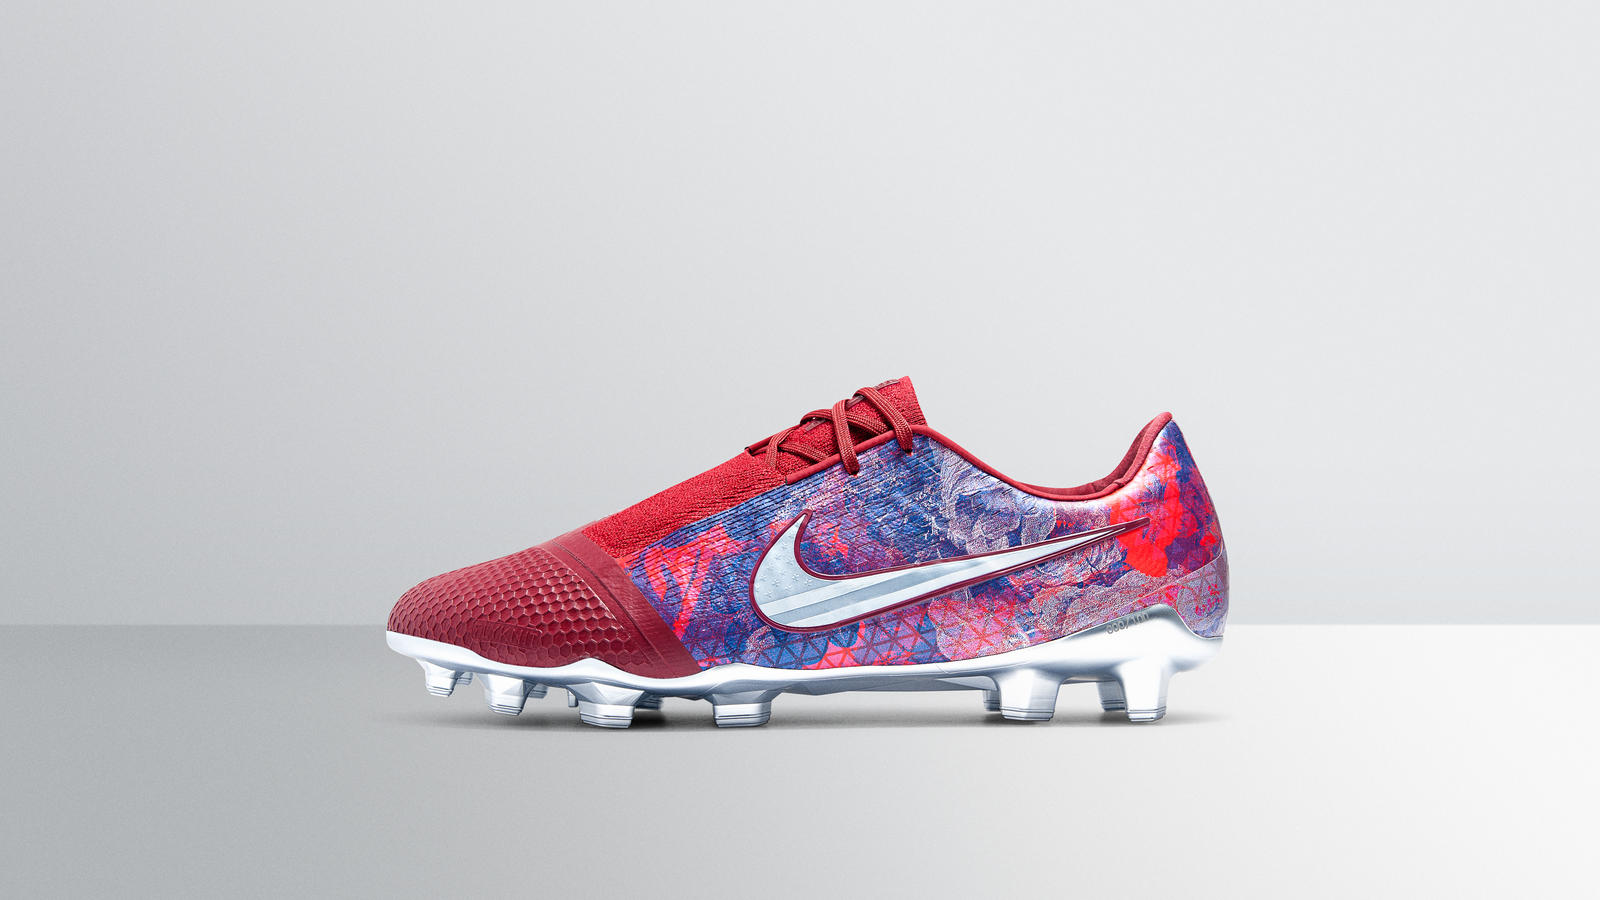 Nike_FeaturedFootwear_PVenom_EliteSE_AlexMorgan-1445_hd_1600.jpg